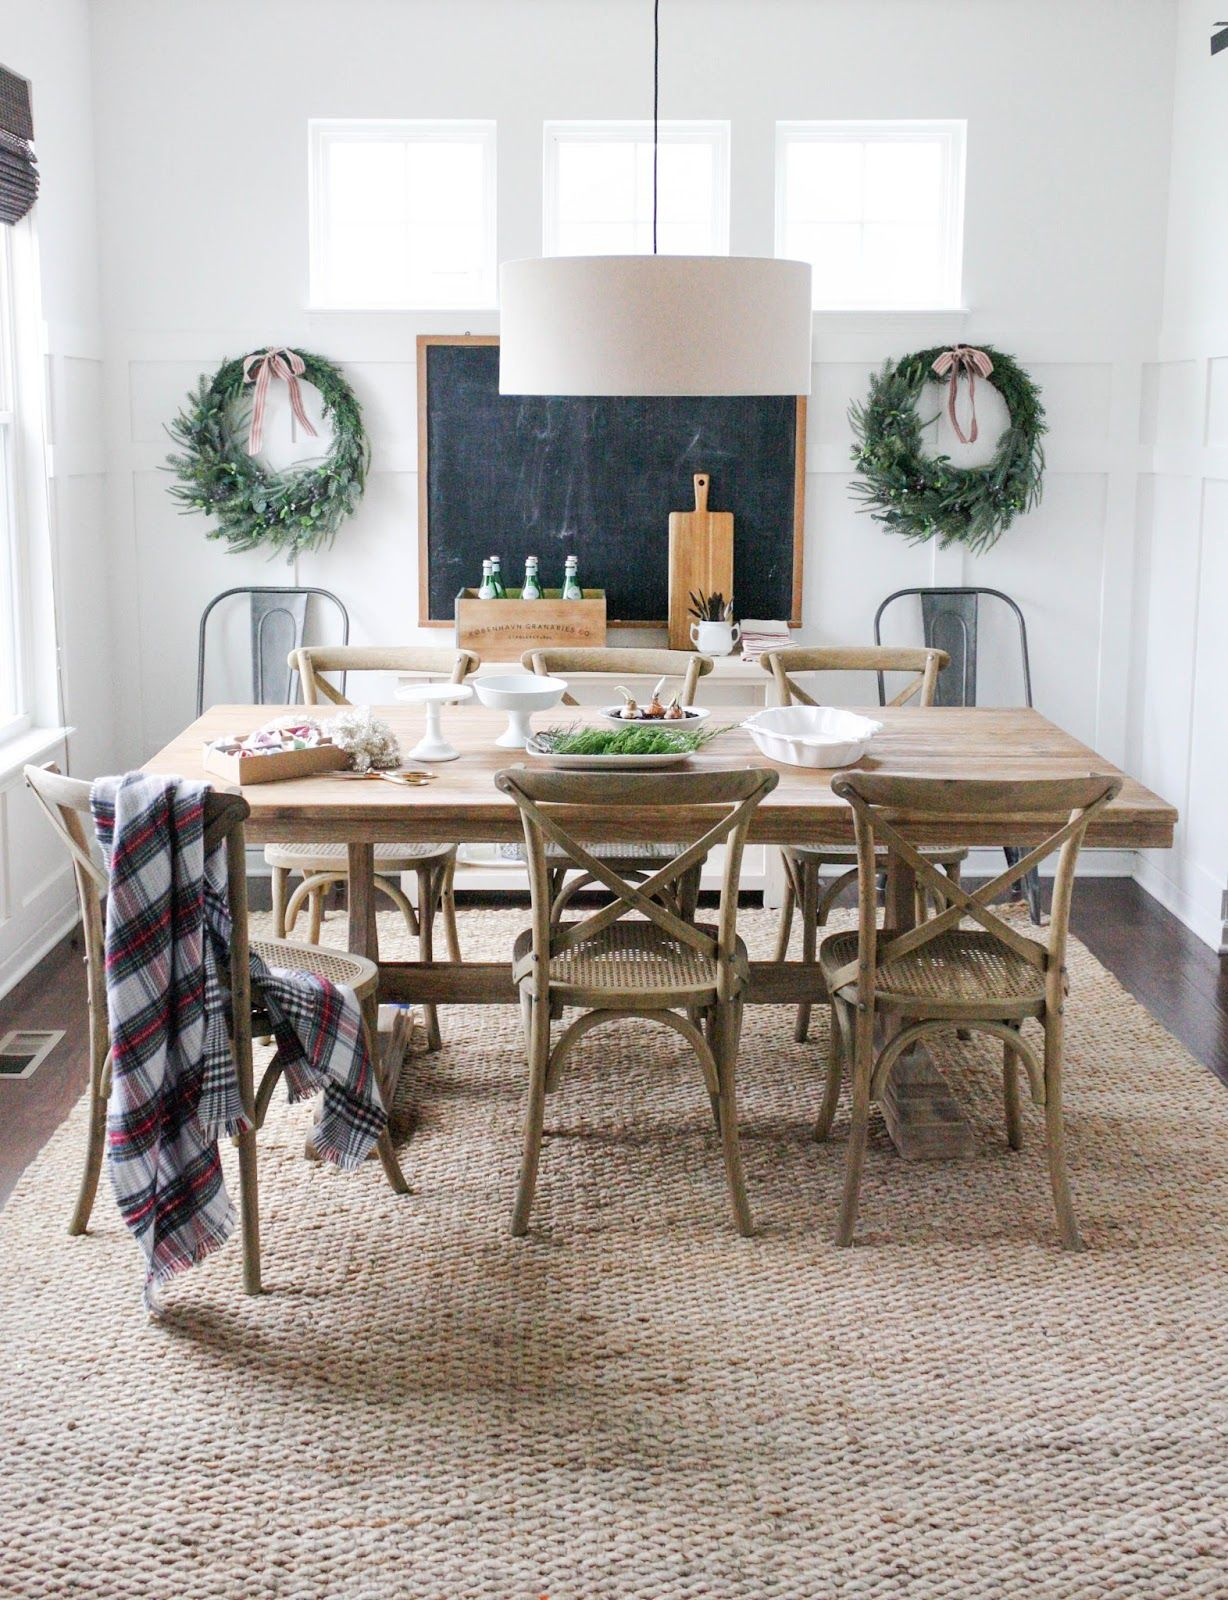 Jute rug from Rugs USA Dining table from World Market